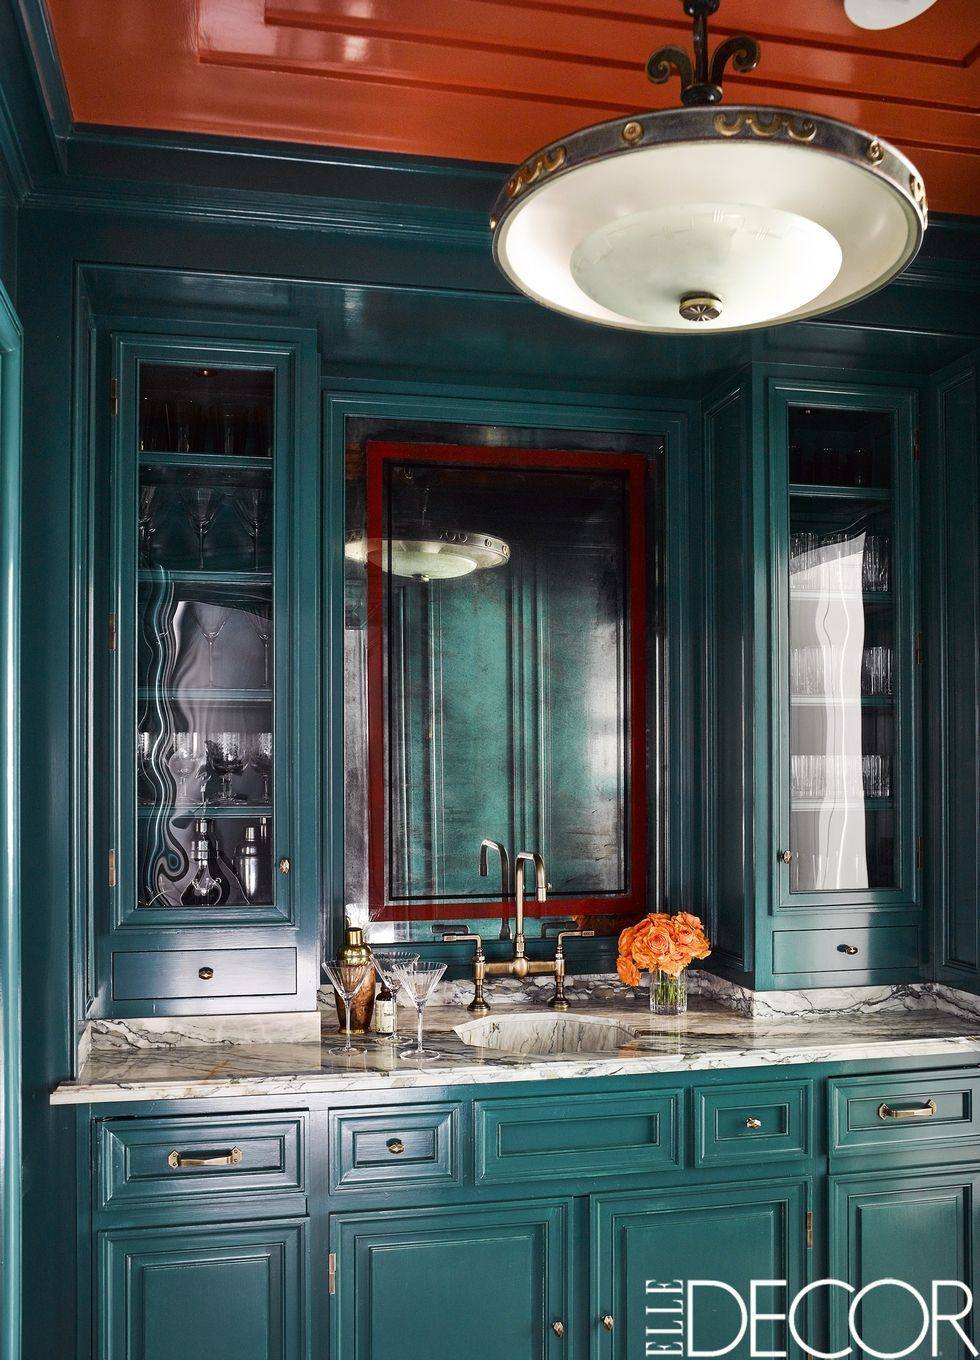 green kitchen cabinets cheap tile 24 design ideas paint colors for kitchens modern douglas friedman mallard